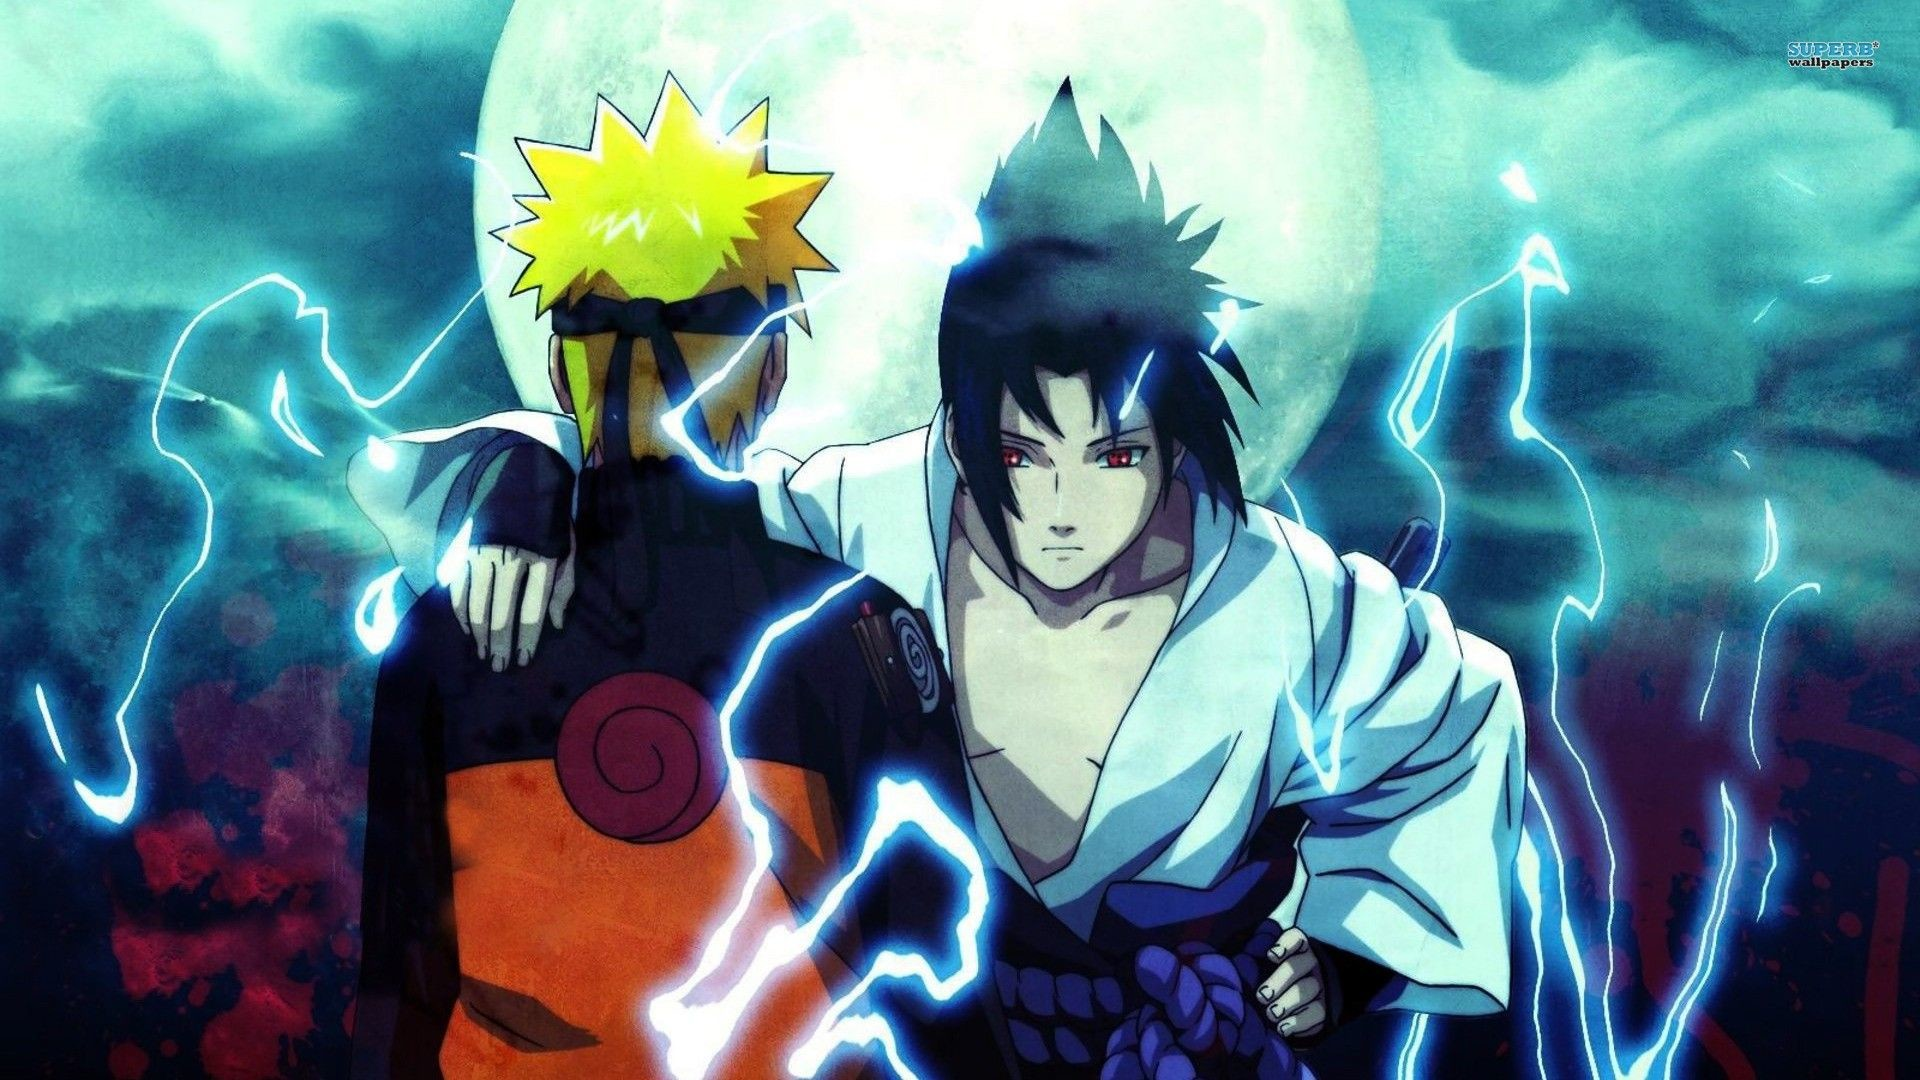 1920x1080 Naruto Vs Sasuke mirror Wallpaper Wallpapers Naruto Pinterest